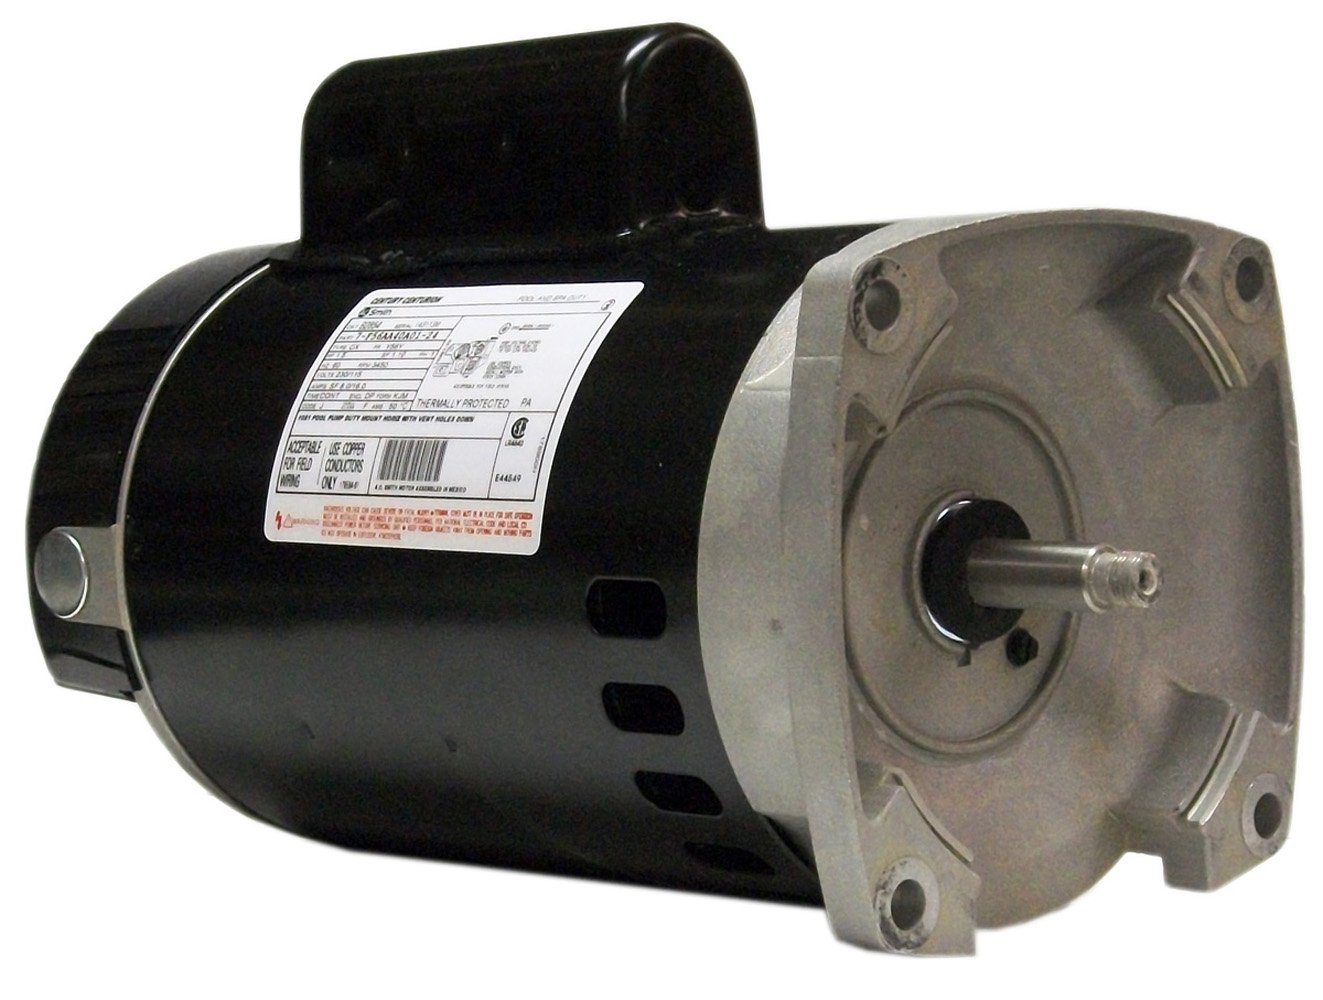 Motor, Square Flange, 56Y, Century, 1.5 HP, Up Rate, 115/230V